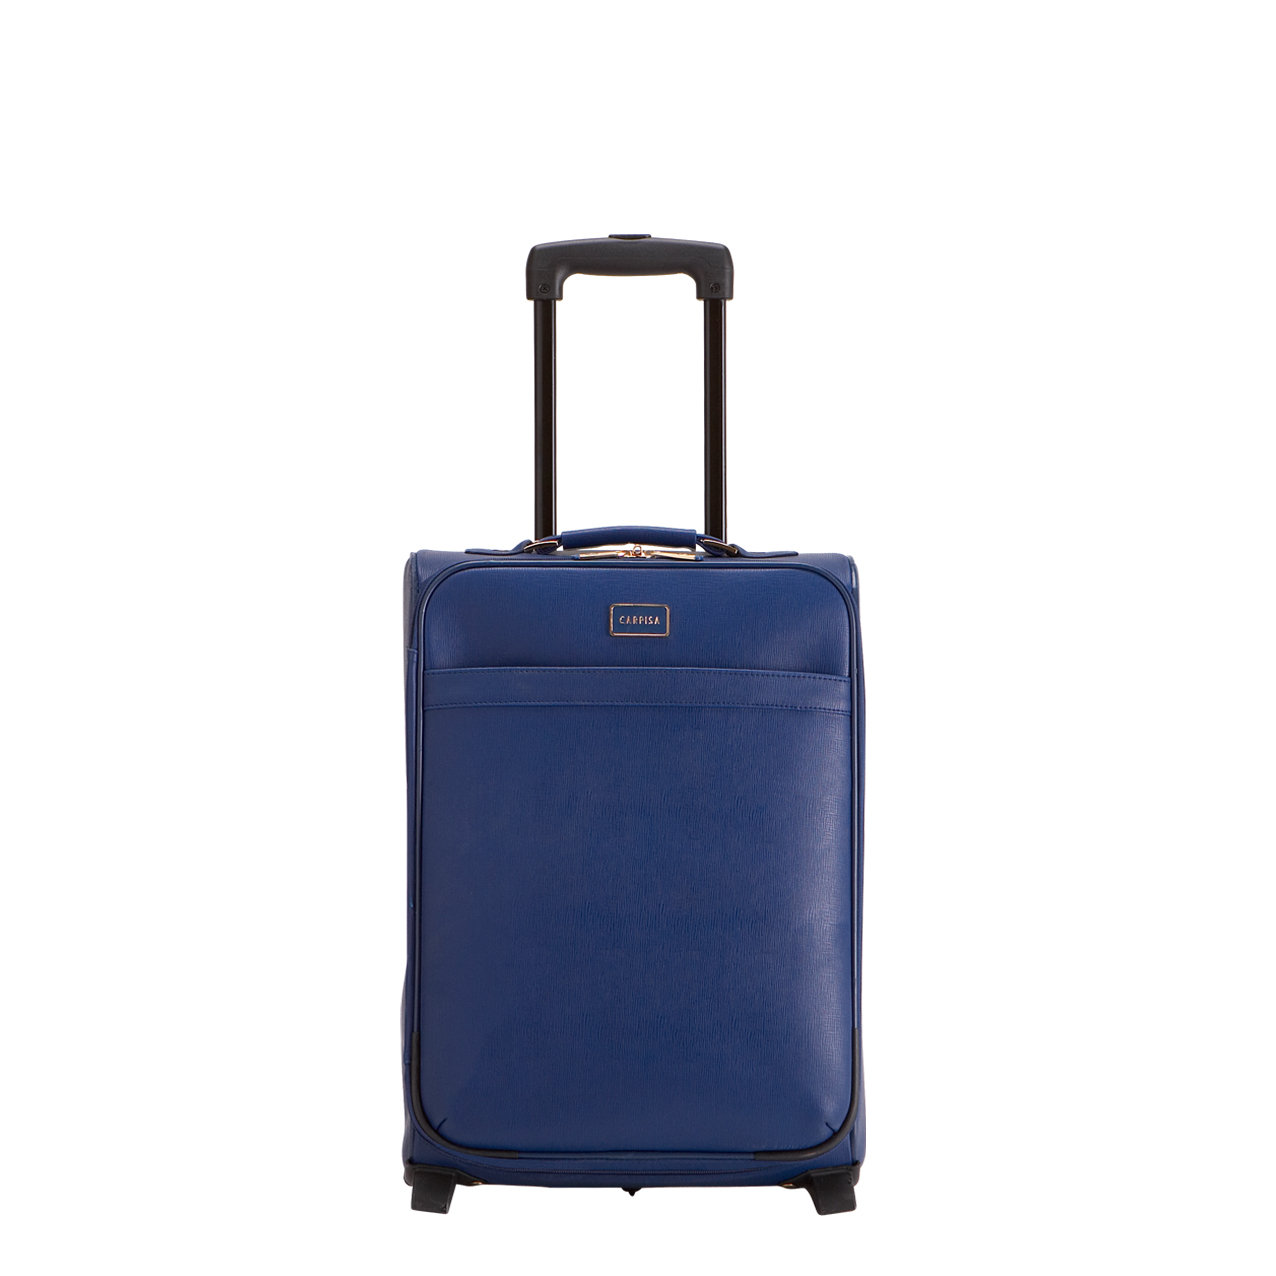 Image of Trolley Small Missing Blu